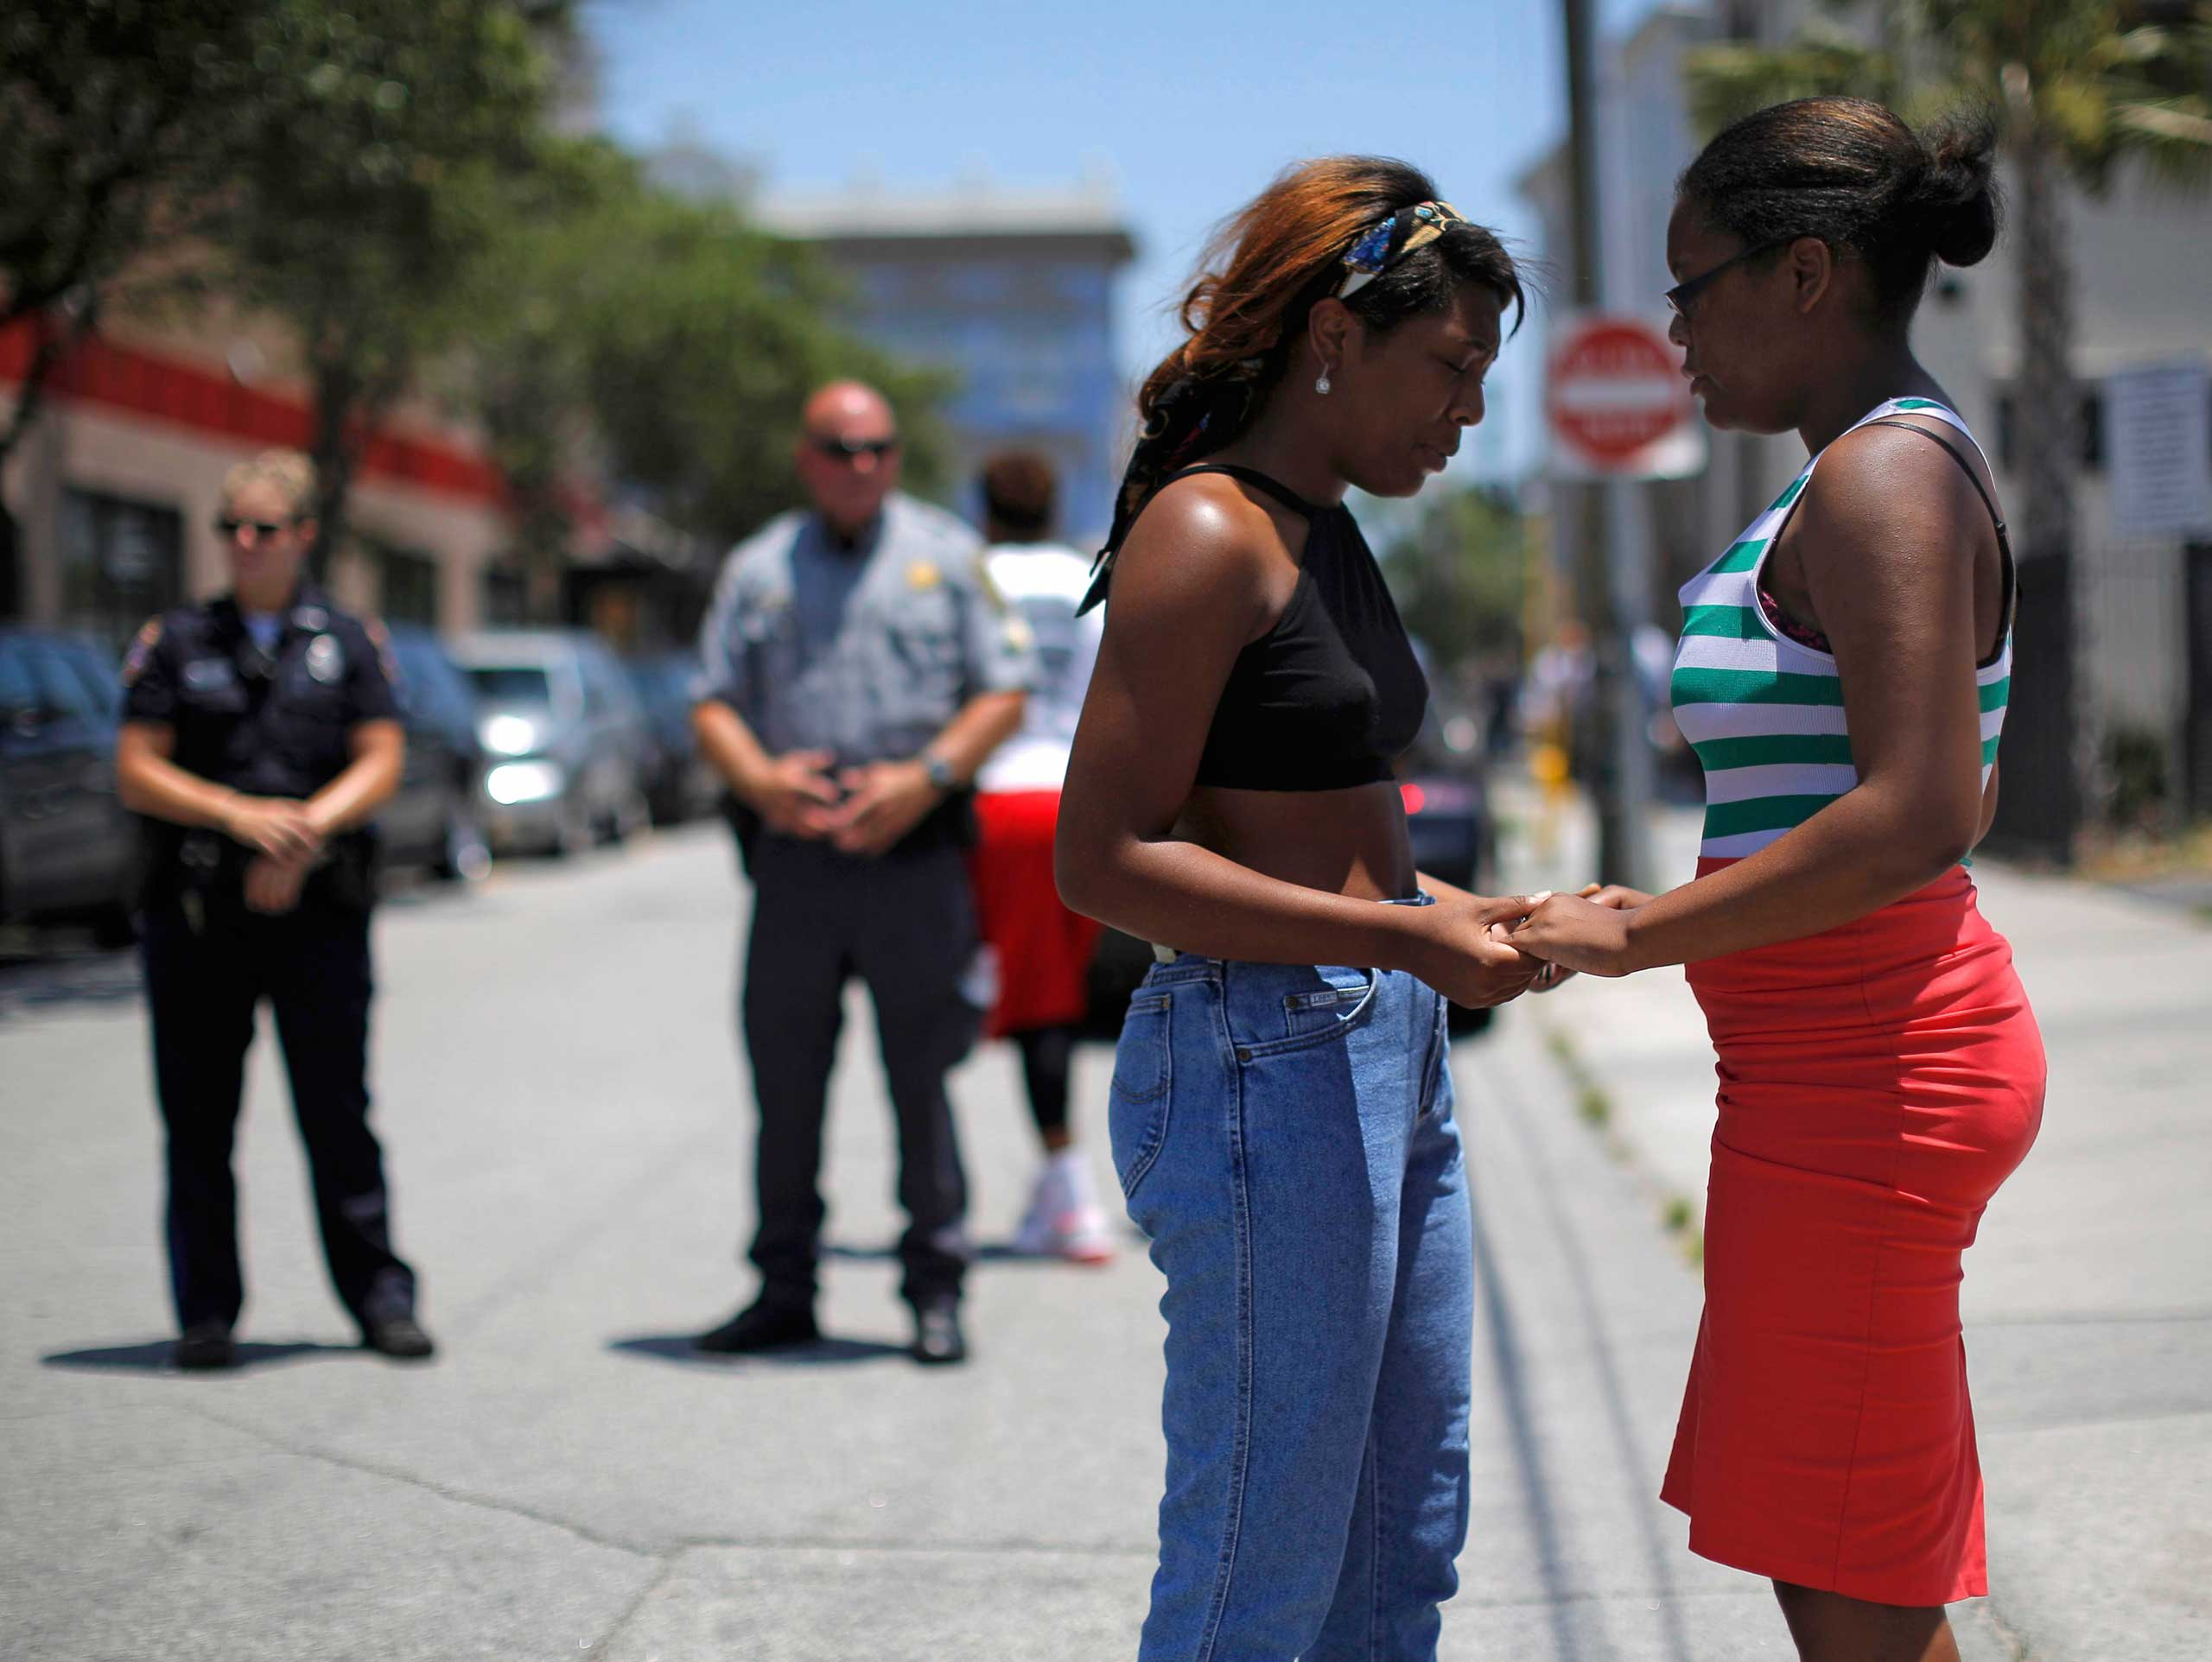 Mourners hold hands as they pause outside Morris Brown AME Church during a vigil one day after a mass shooting in Charleston, South Carolina, on June 18, 2015.